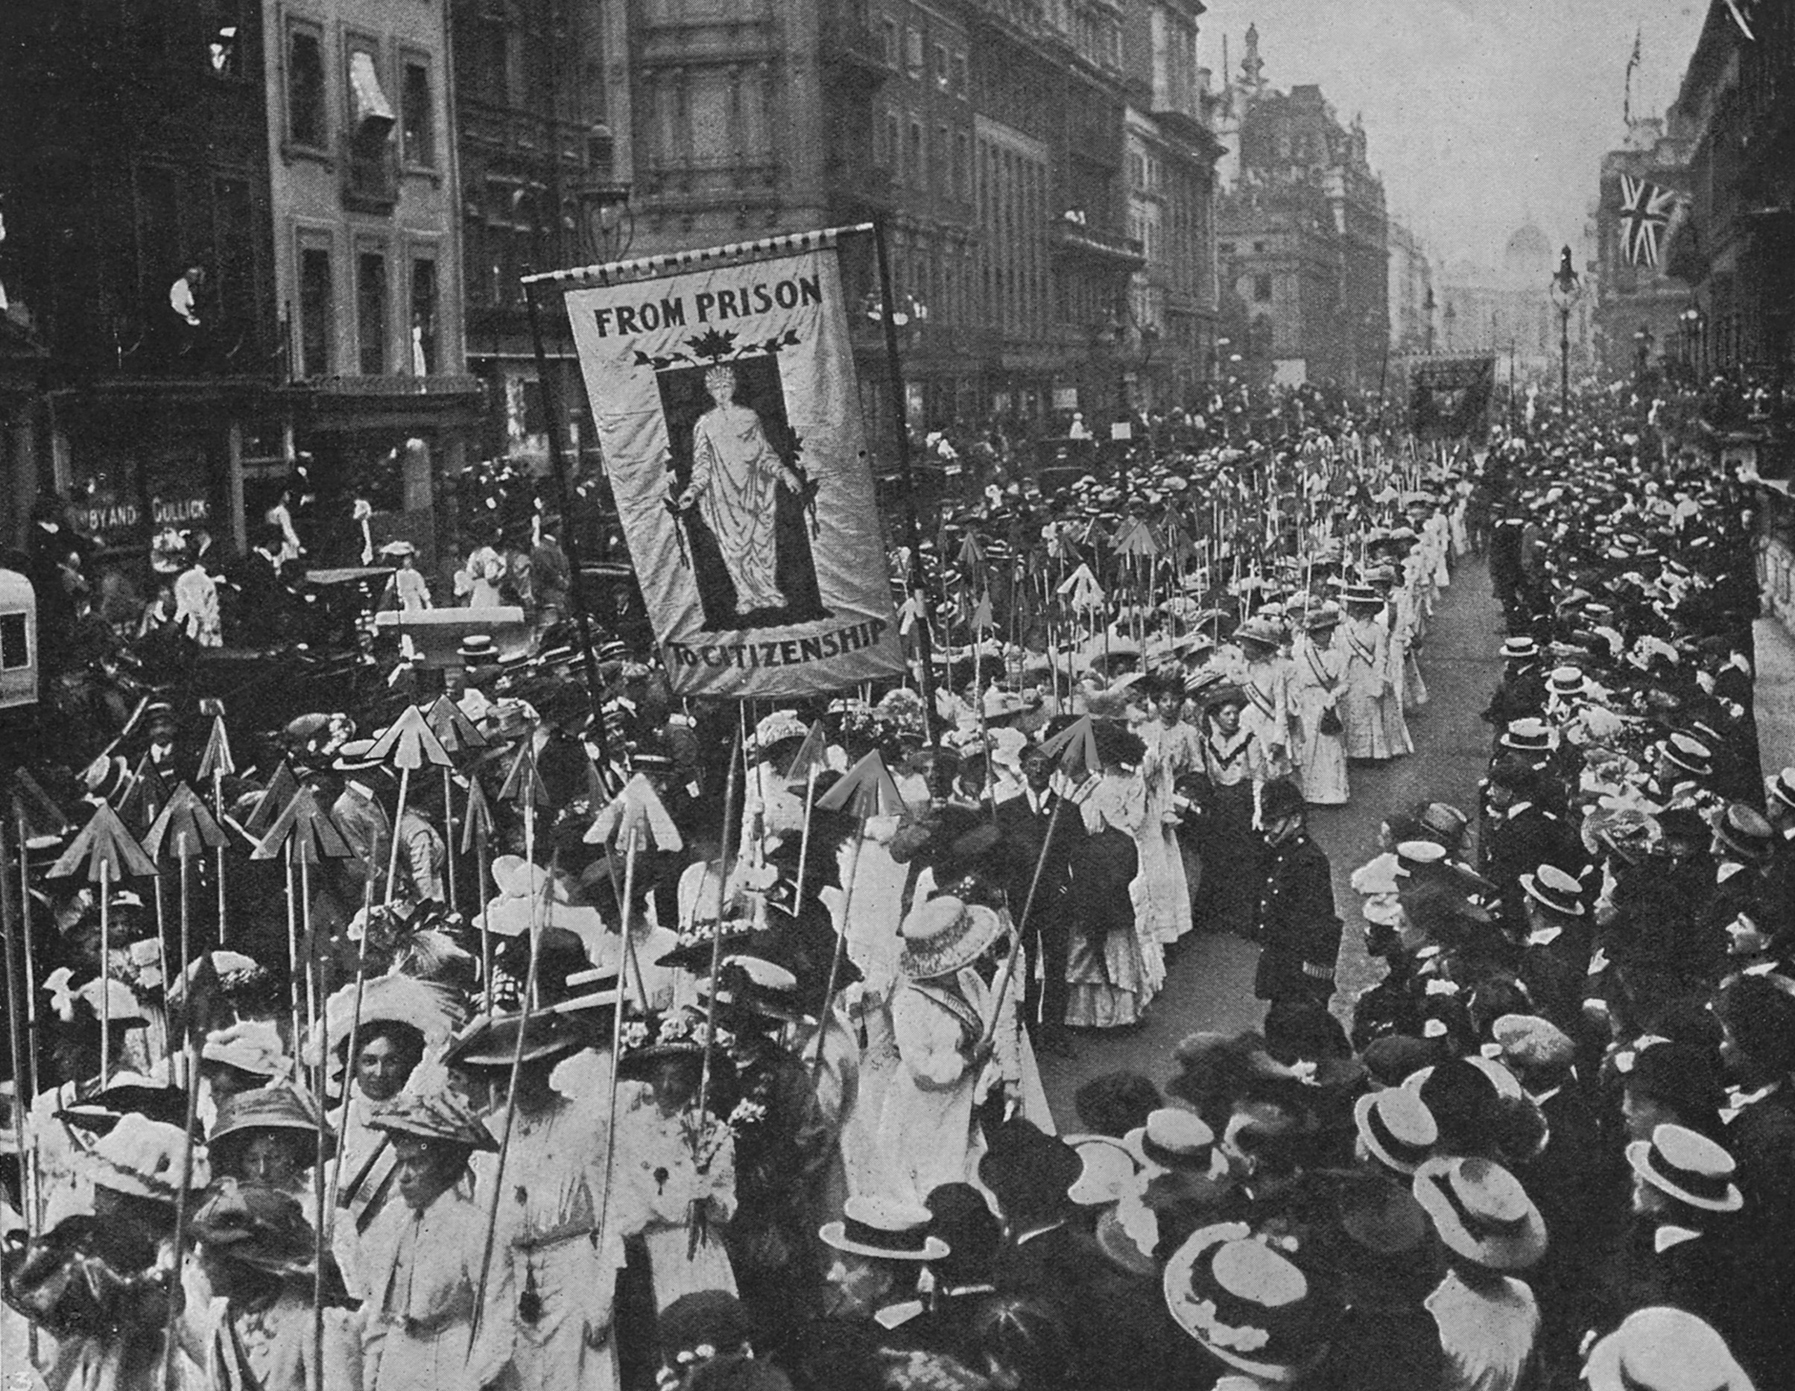 Suffragette demonstration w. women carrying wands tipped with silver broad-arrows and banner From Prison to Citizenship, each of 617 arrows representing a conviction of a Suffragette. (Photo by Time Life Pictures/Mansell/Time Life Pictures/Getty Images)